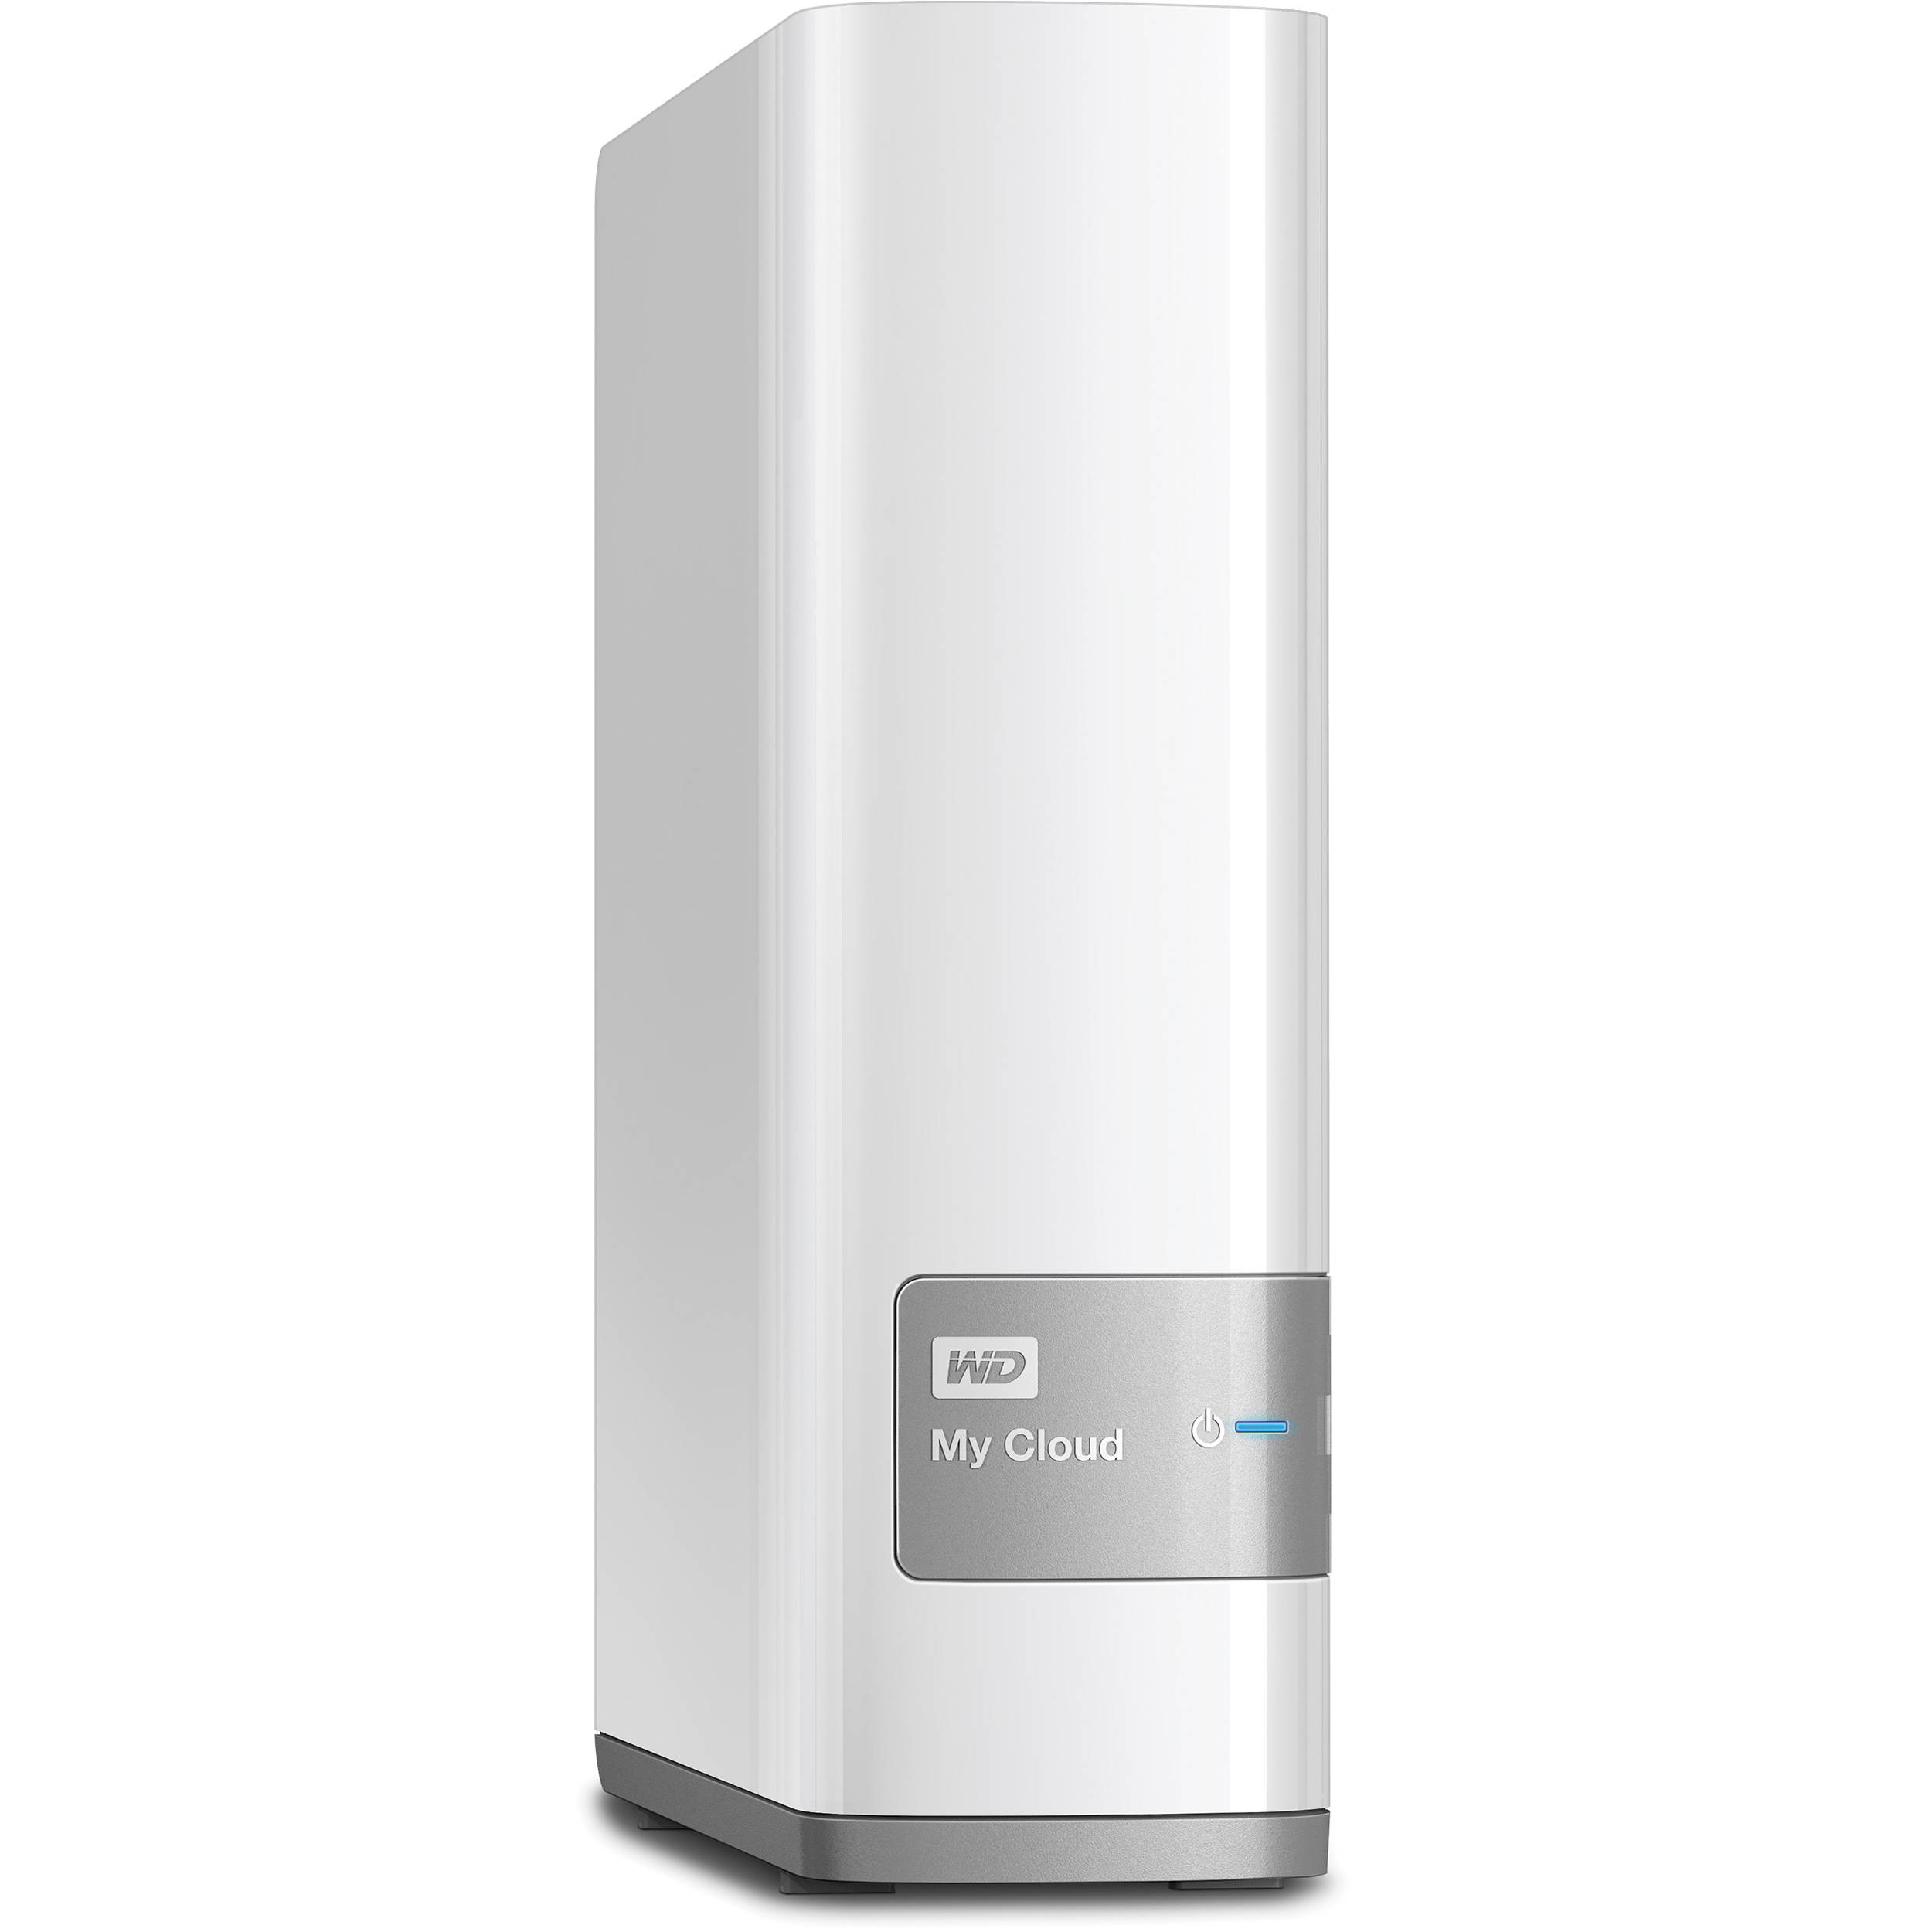 Wd 3tb My Cloud Personal Cloud Nas Storage Wdbctl0030hwt Nesn